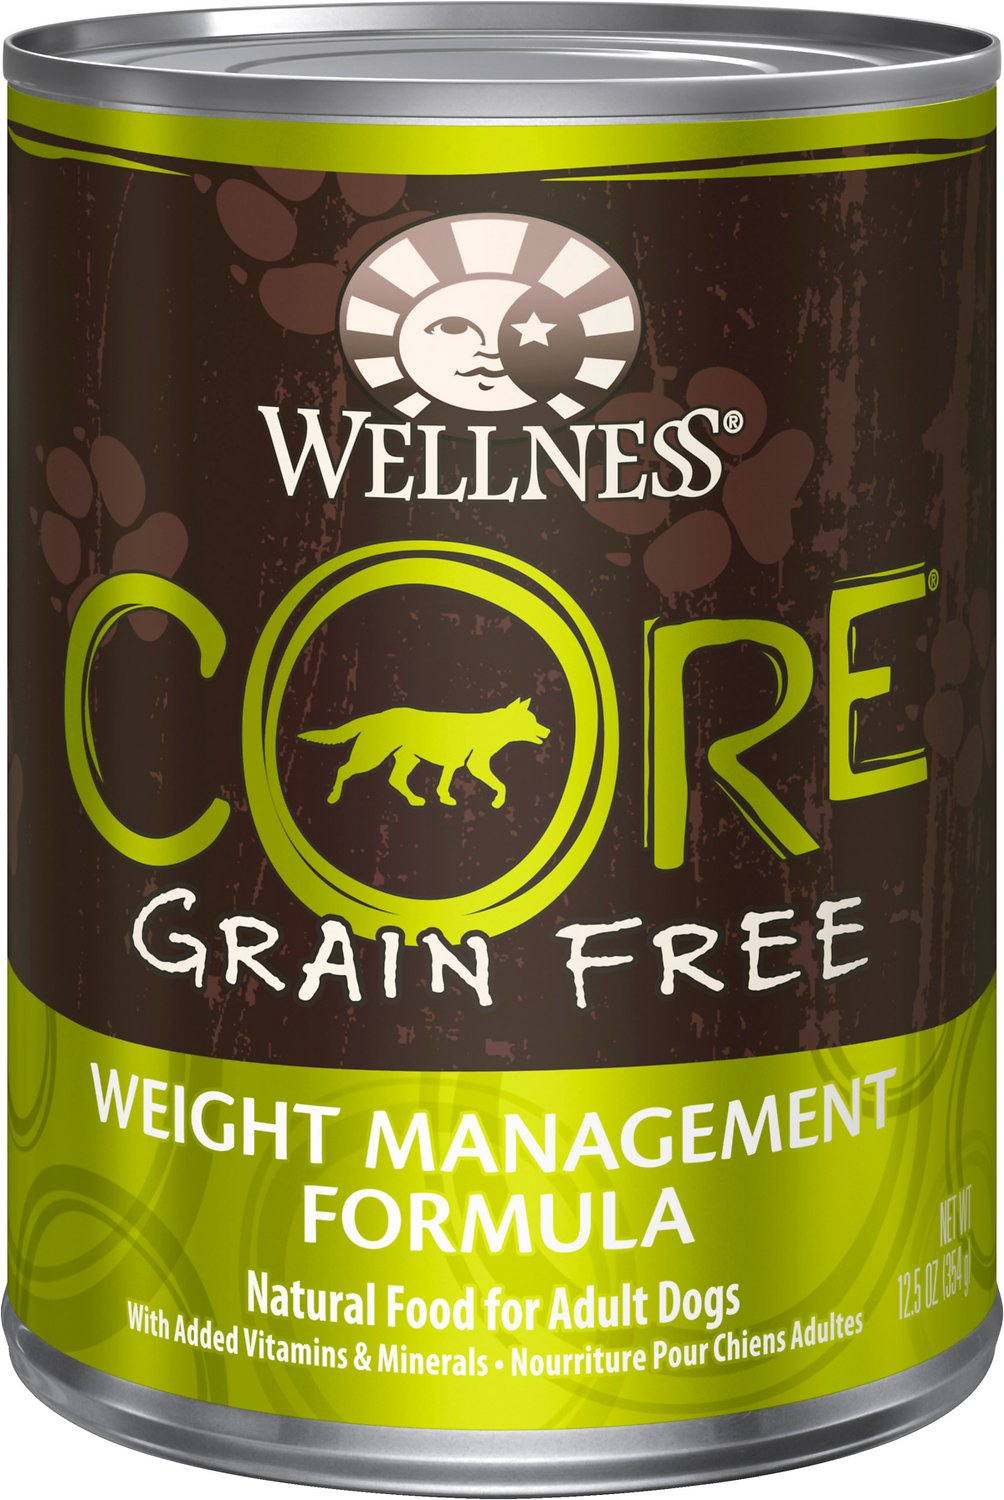 Wellness Core Grain Free Weight Management Formula Canned